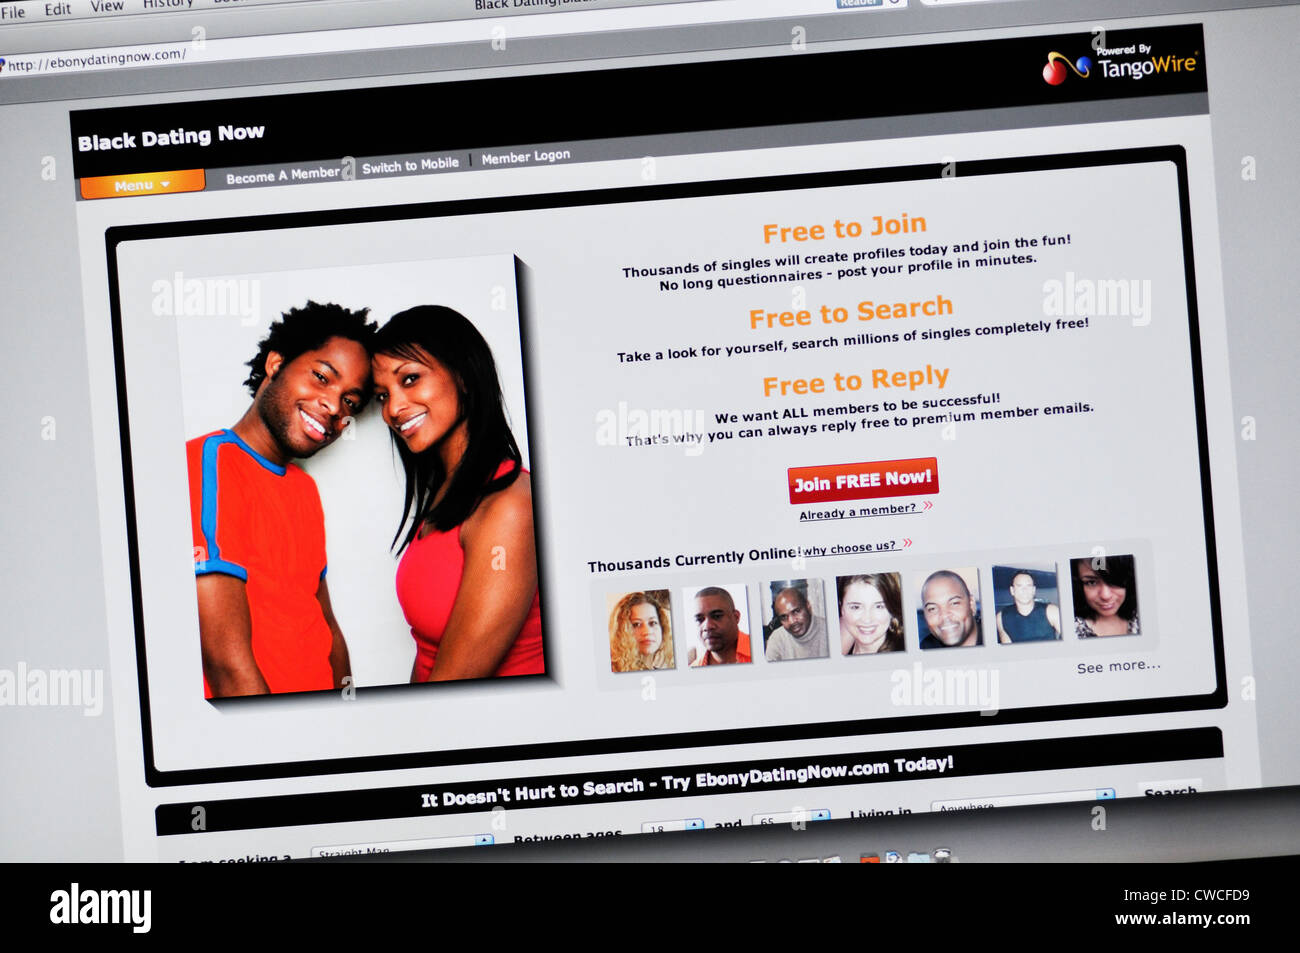 There are numerous dating sites on the Internet today. How do you know which site is best?